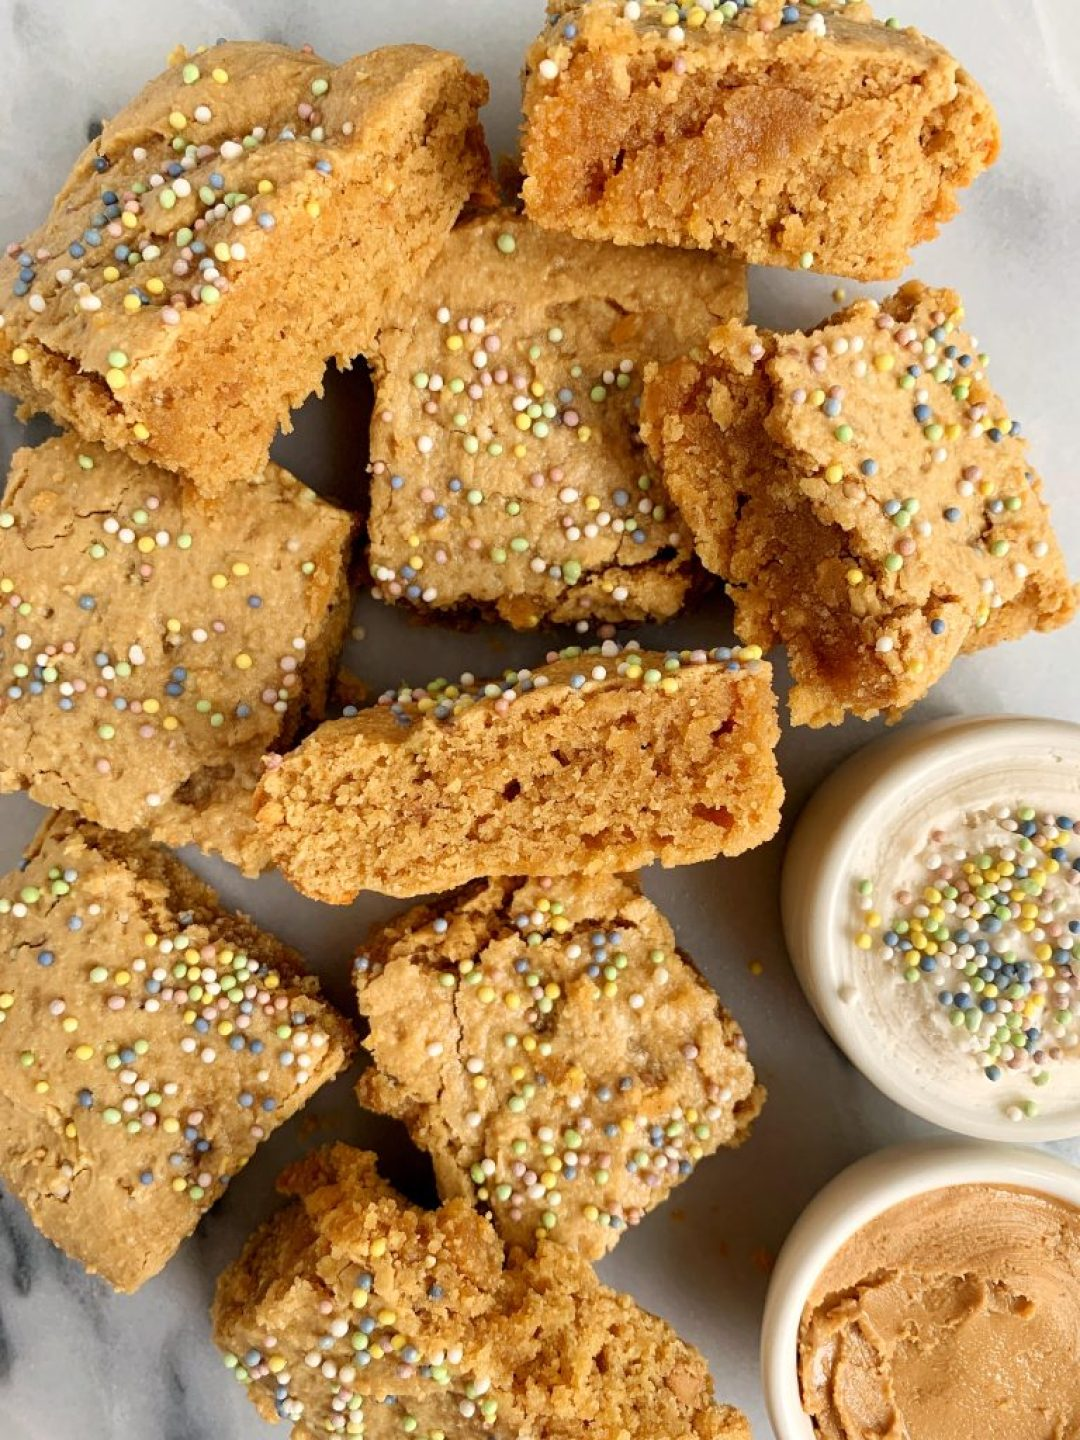 5-ingredient Cake Batter Blondies made with all gluten-free, grain-free and dairy-free ingredients for an easy and healthy paleo funfetti blondie!